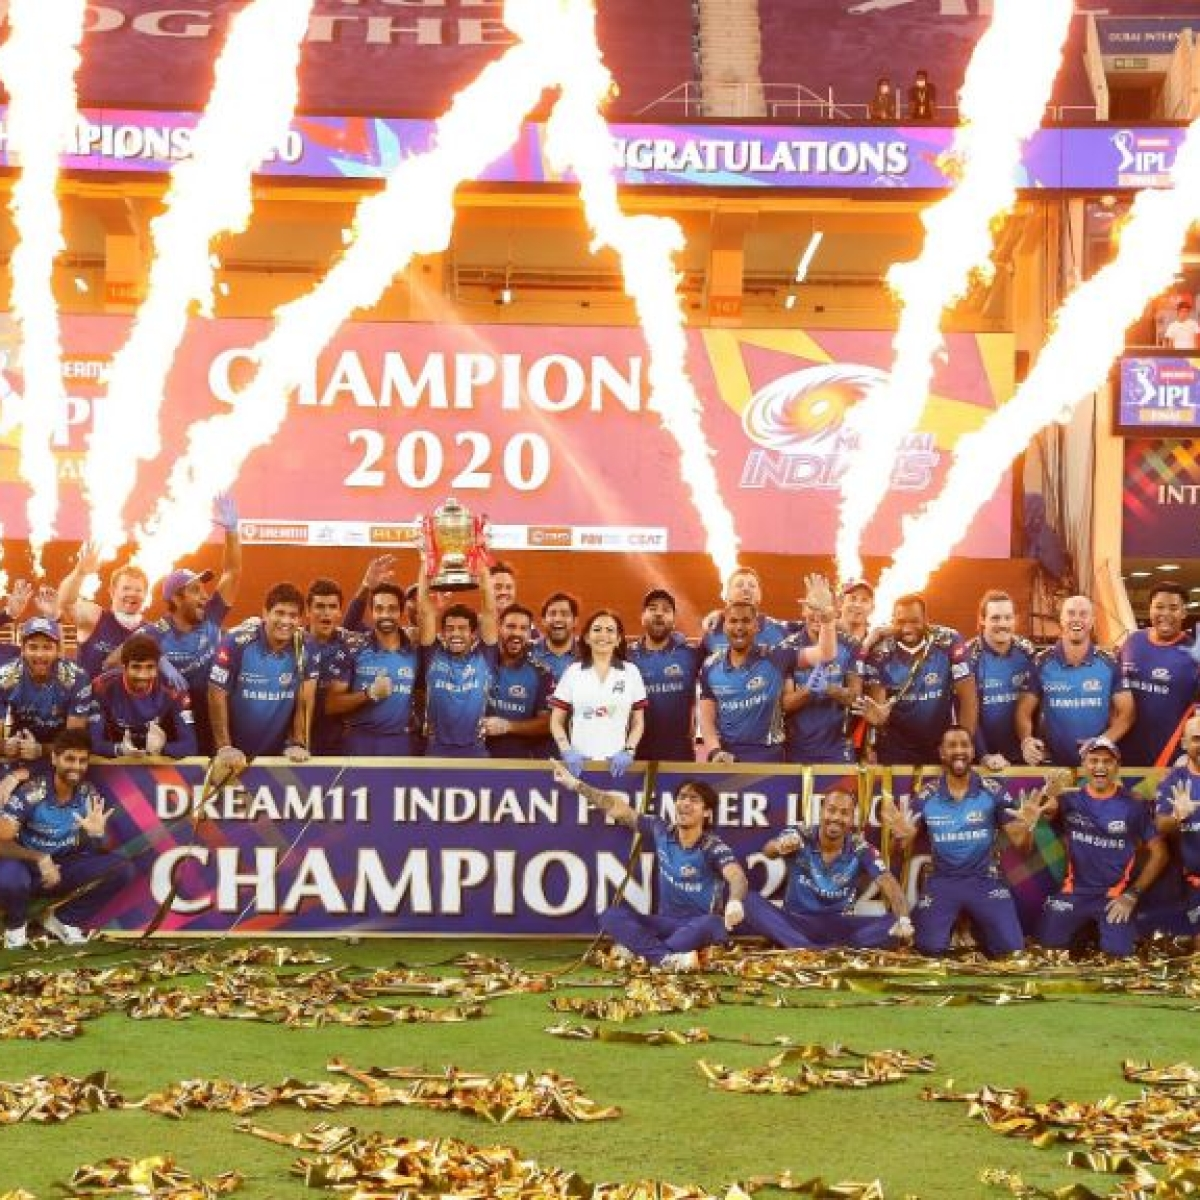 IPL 2020 saw record-breaking 28 per cent increase in viewership